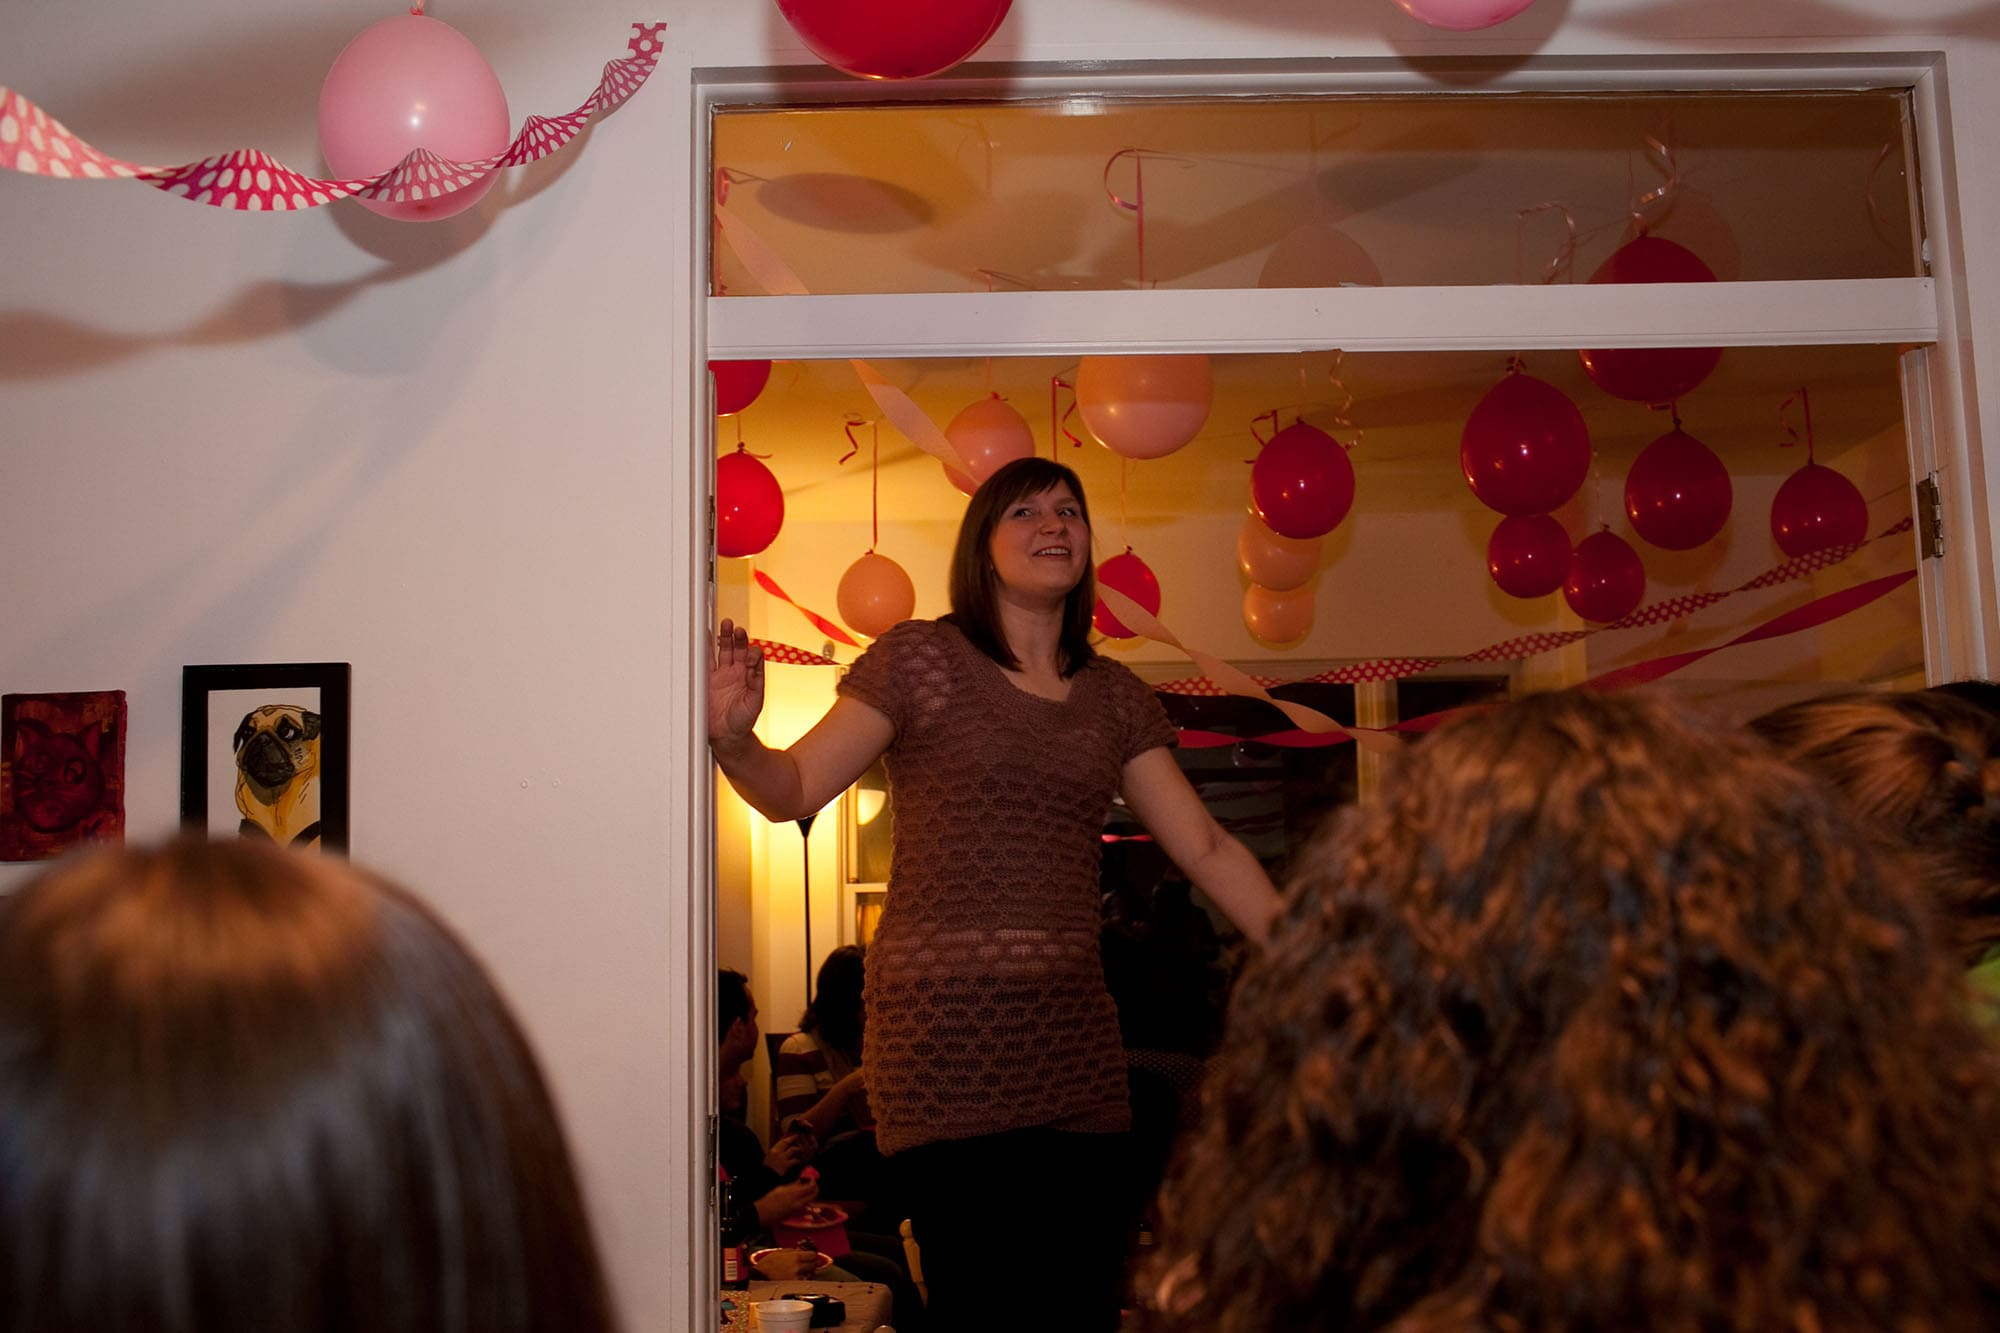 My thirtieth birthday party. Making a big announcement.